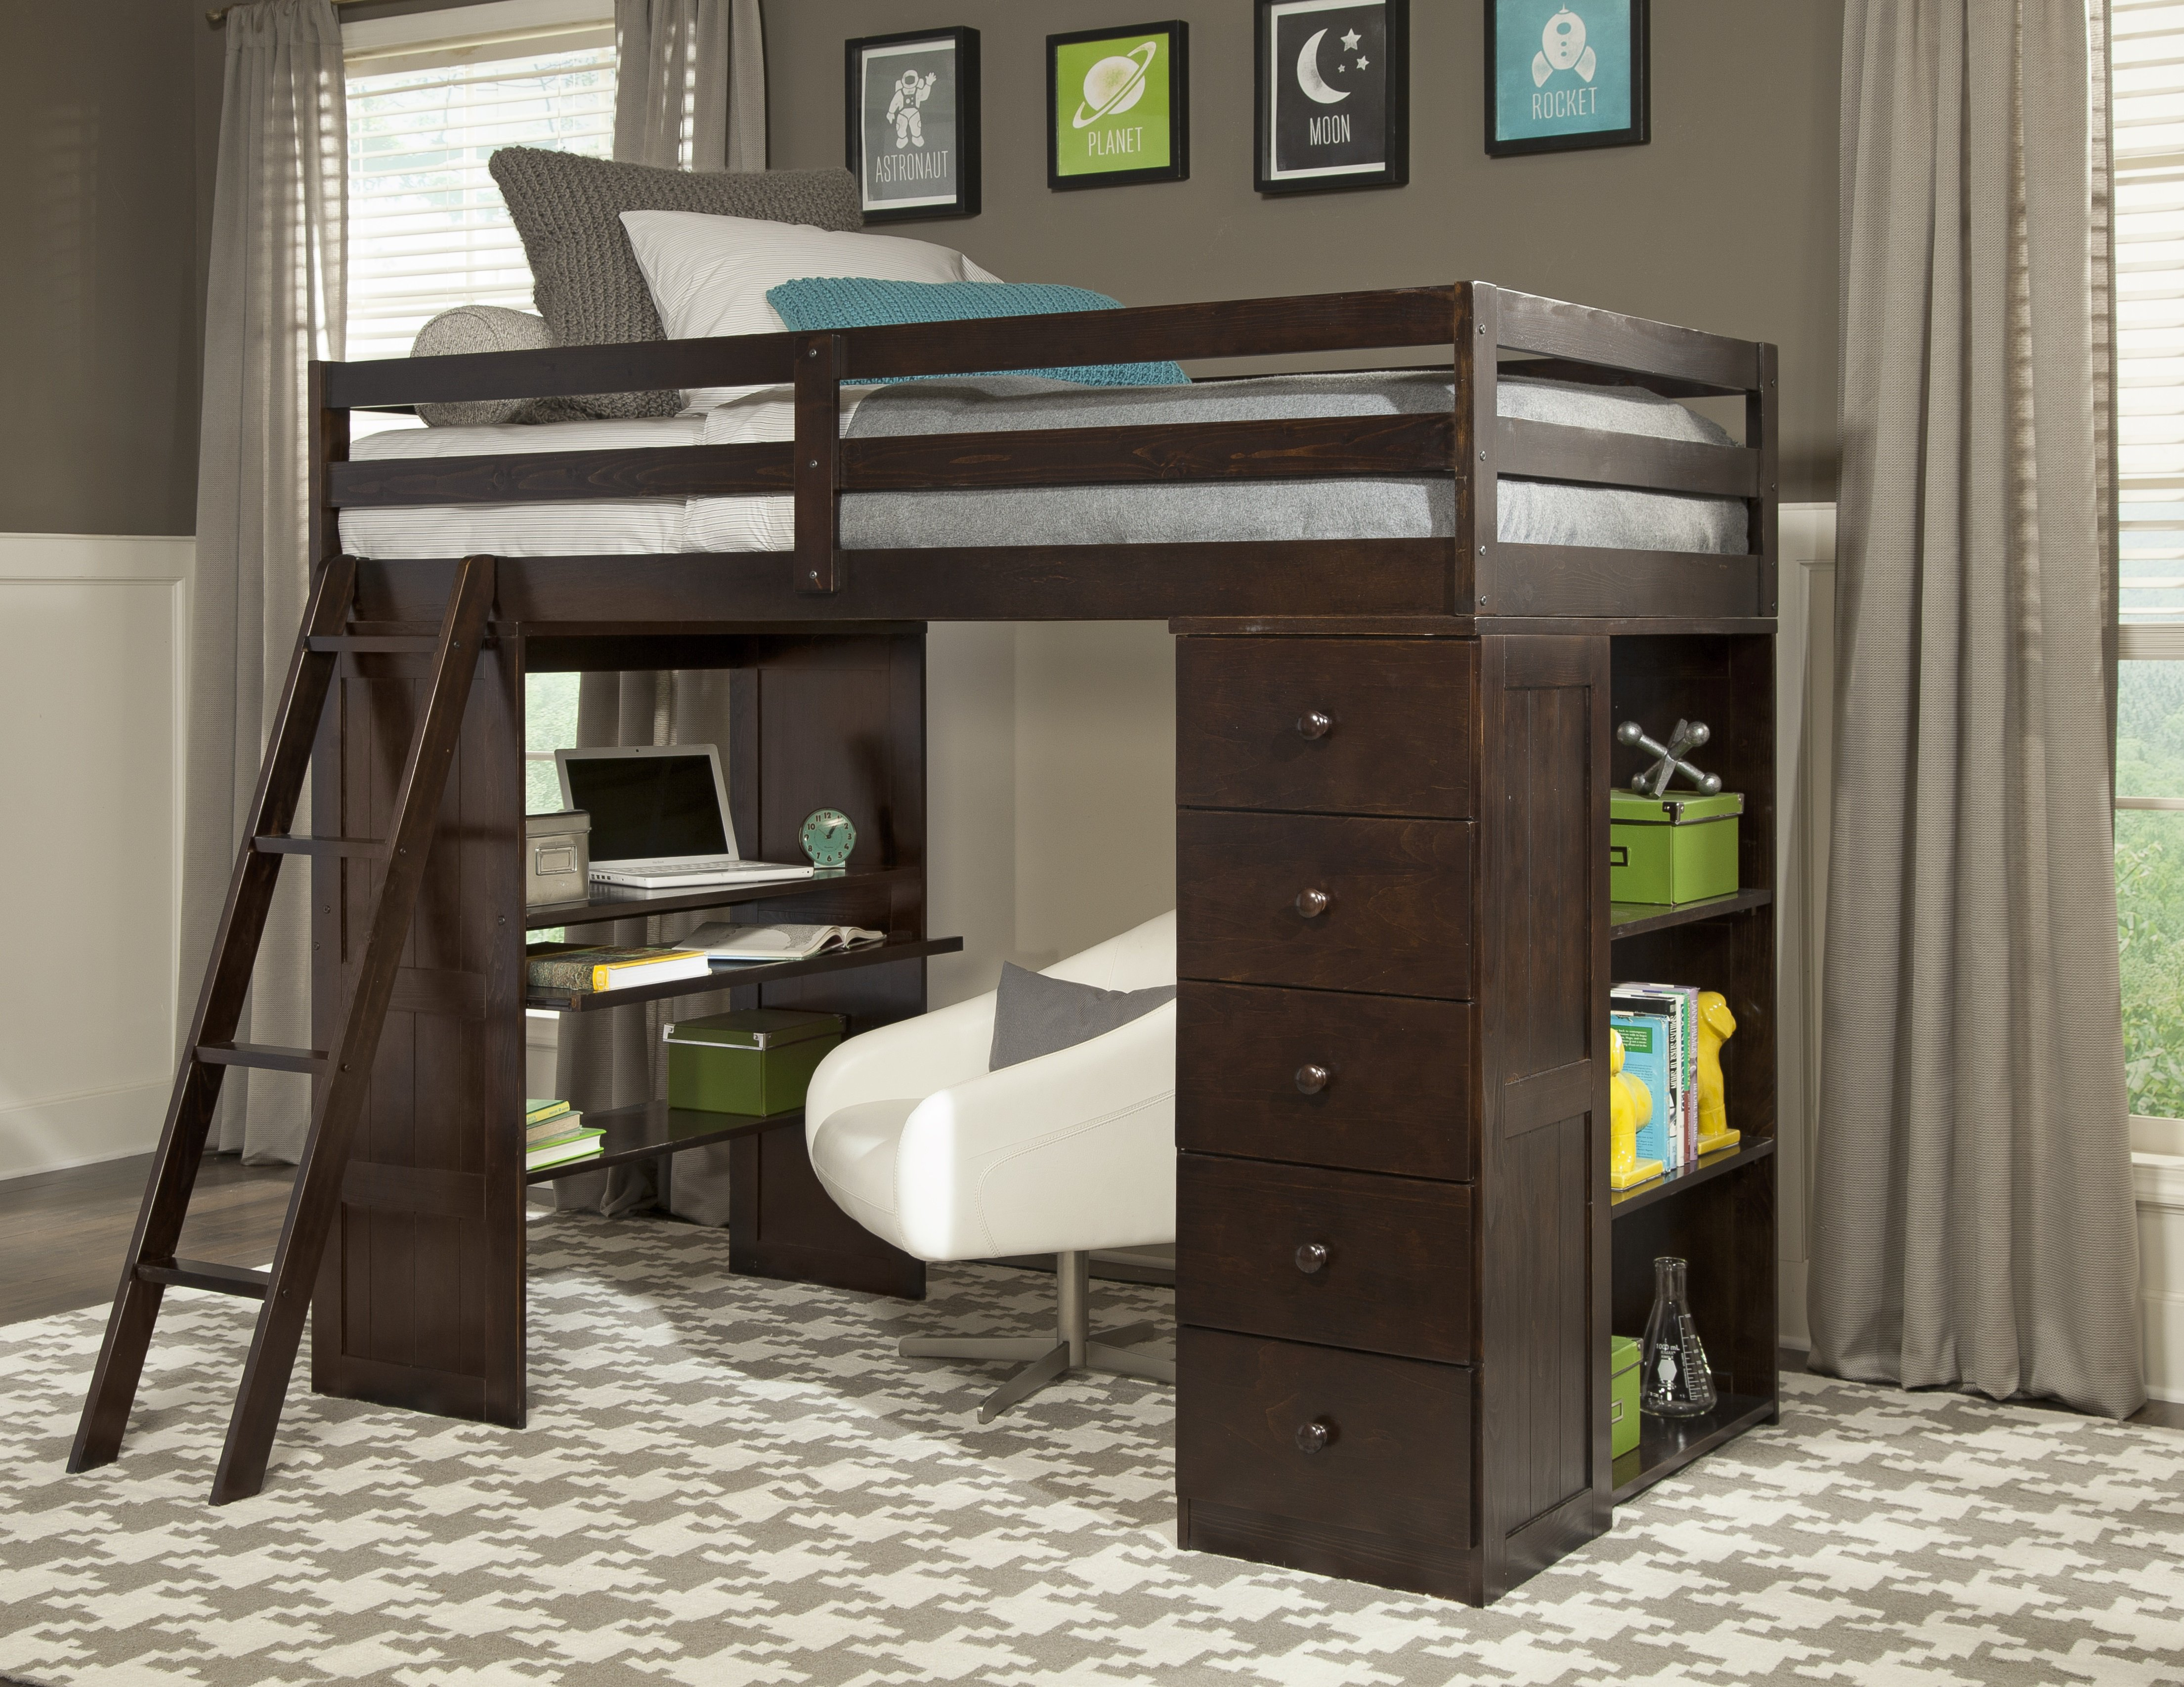 Innovative Canwood Loft Bed for Your Kids Bedroom Ideas: Comfy Canwood Alpine Ii Loft Bed | Magnificent Canwood Loft Bed